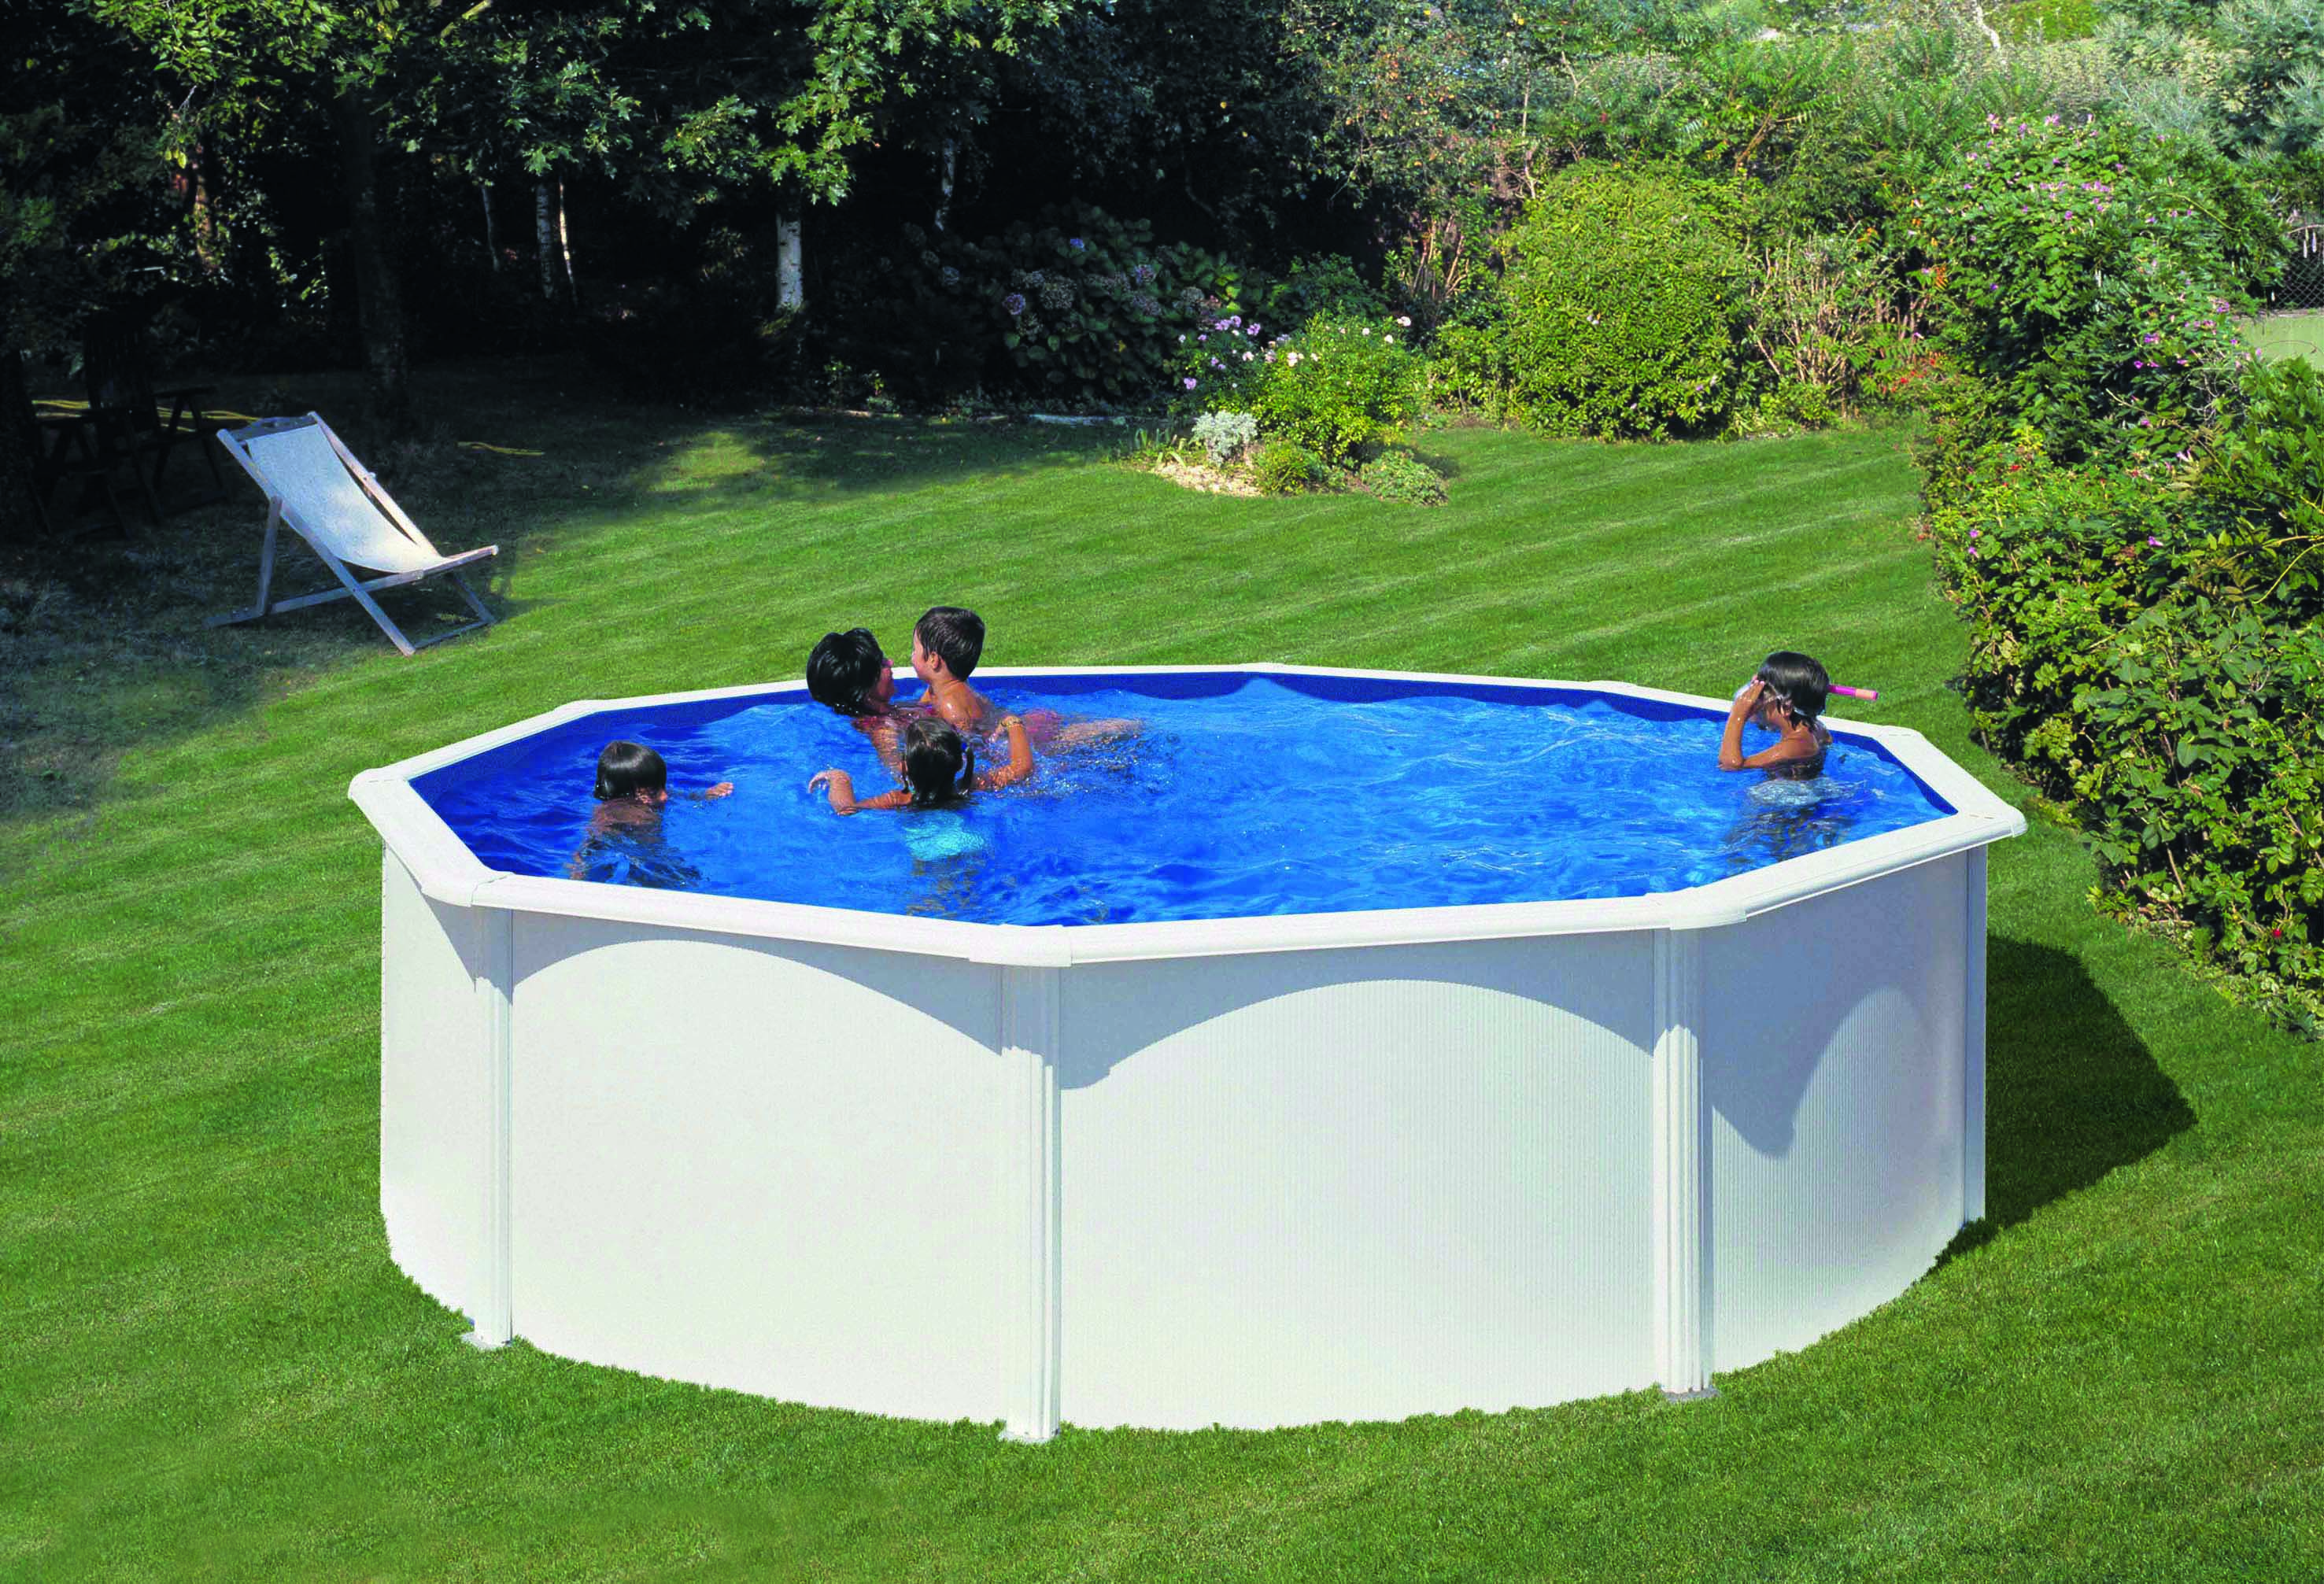 Pool Liner Rund Poolset Classic Rund Clear Pool Kompletta Pooler Bolist